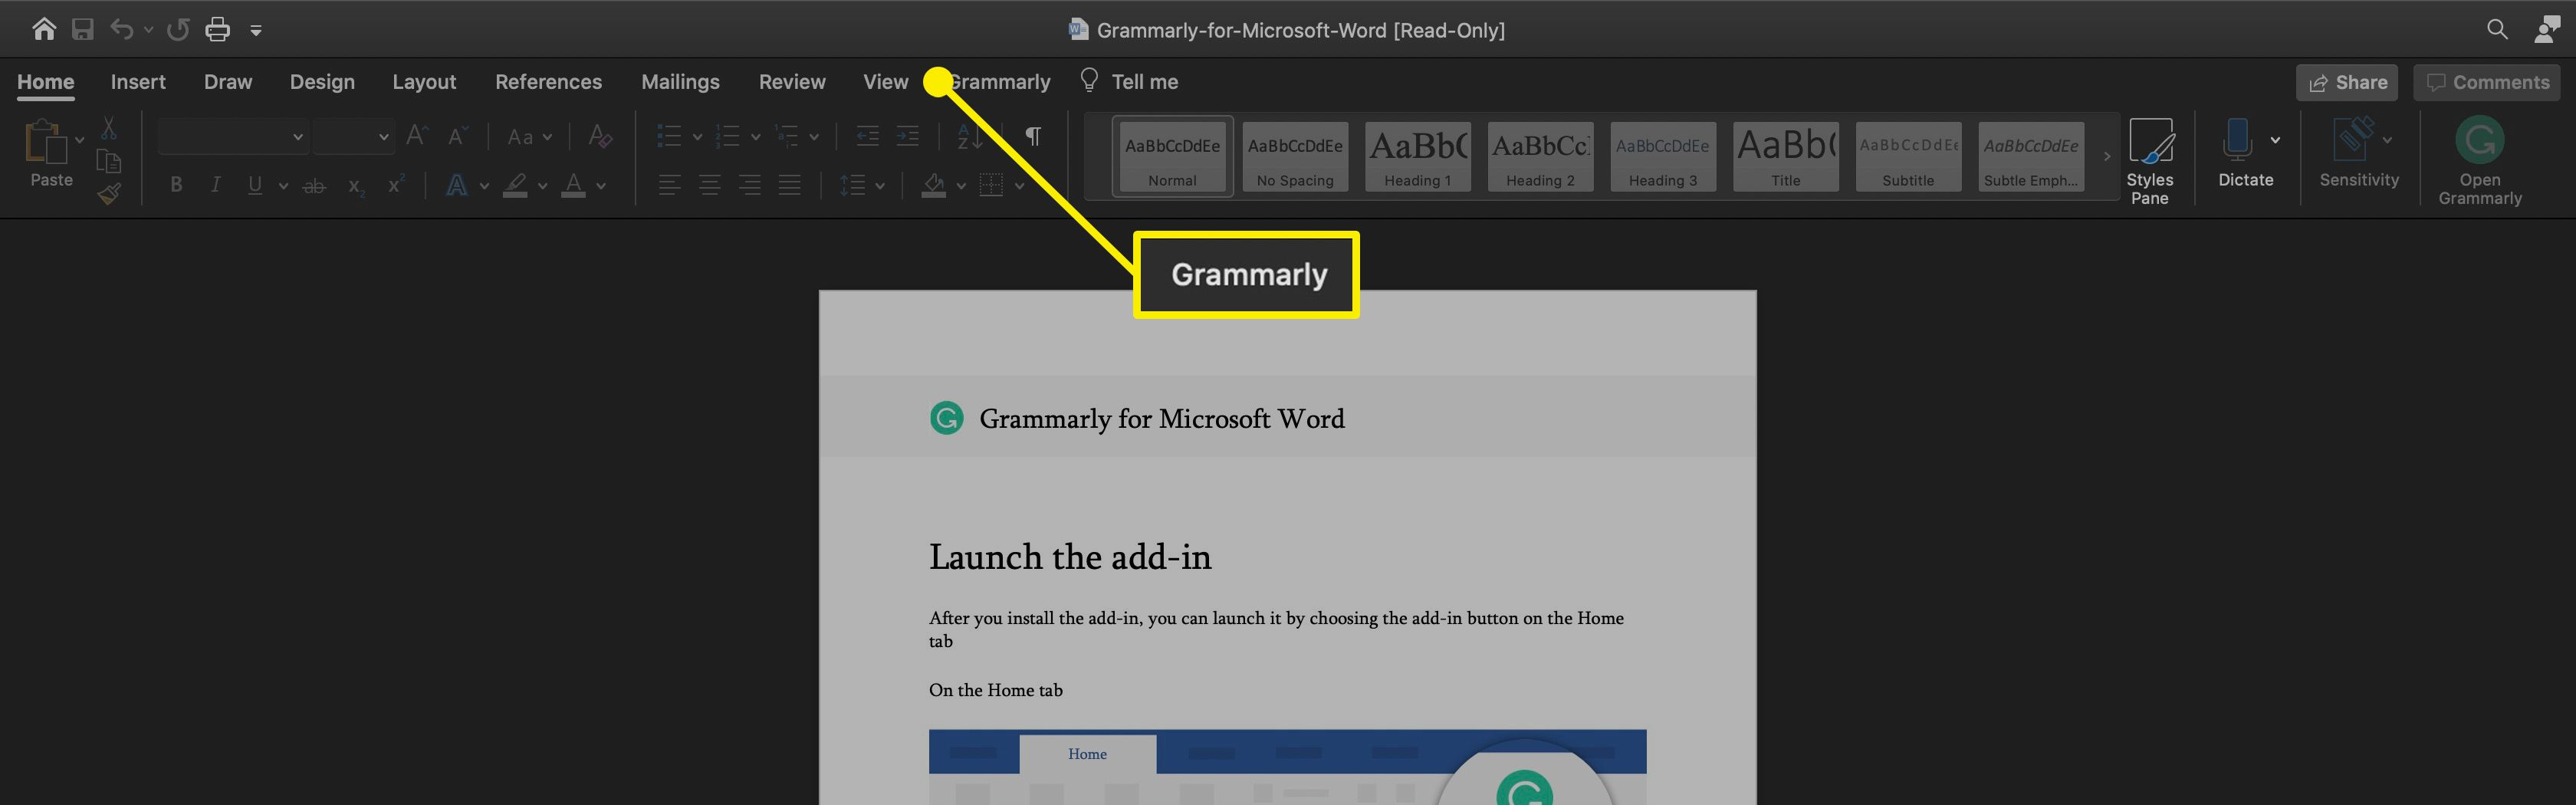 The Grammarly option on the Ribbon in Word for Mac.